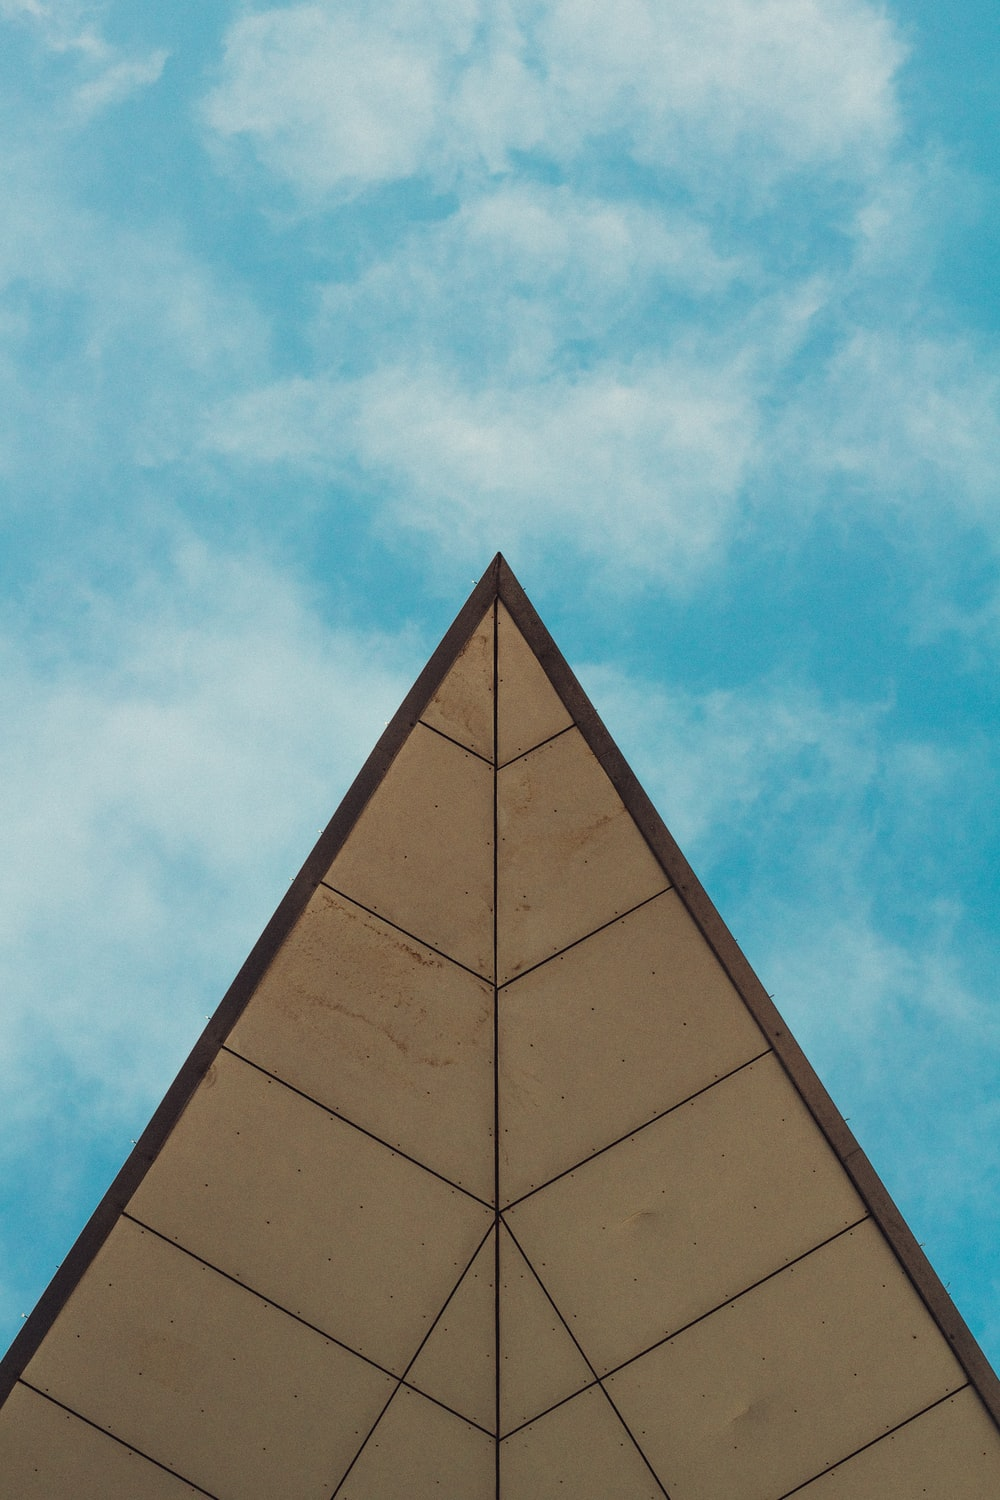 brown pyramid building